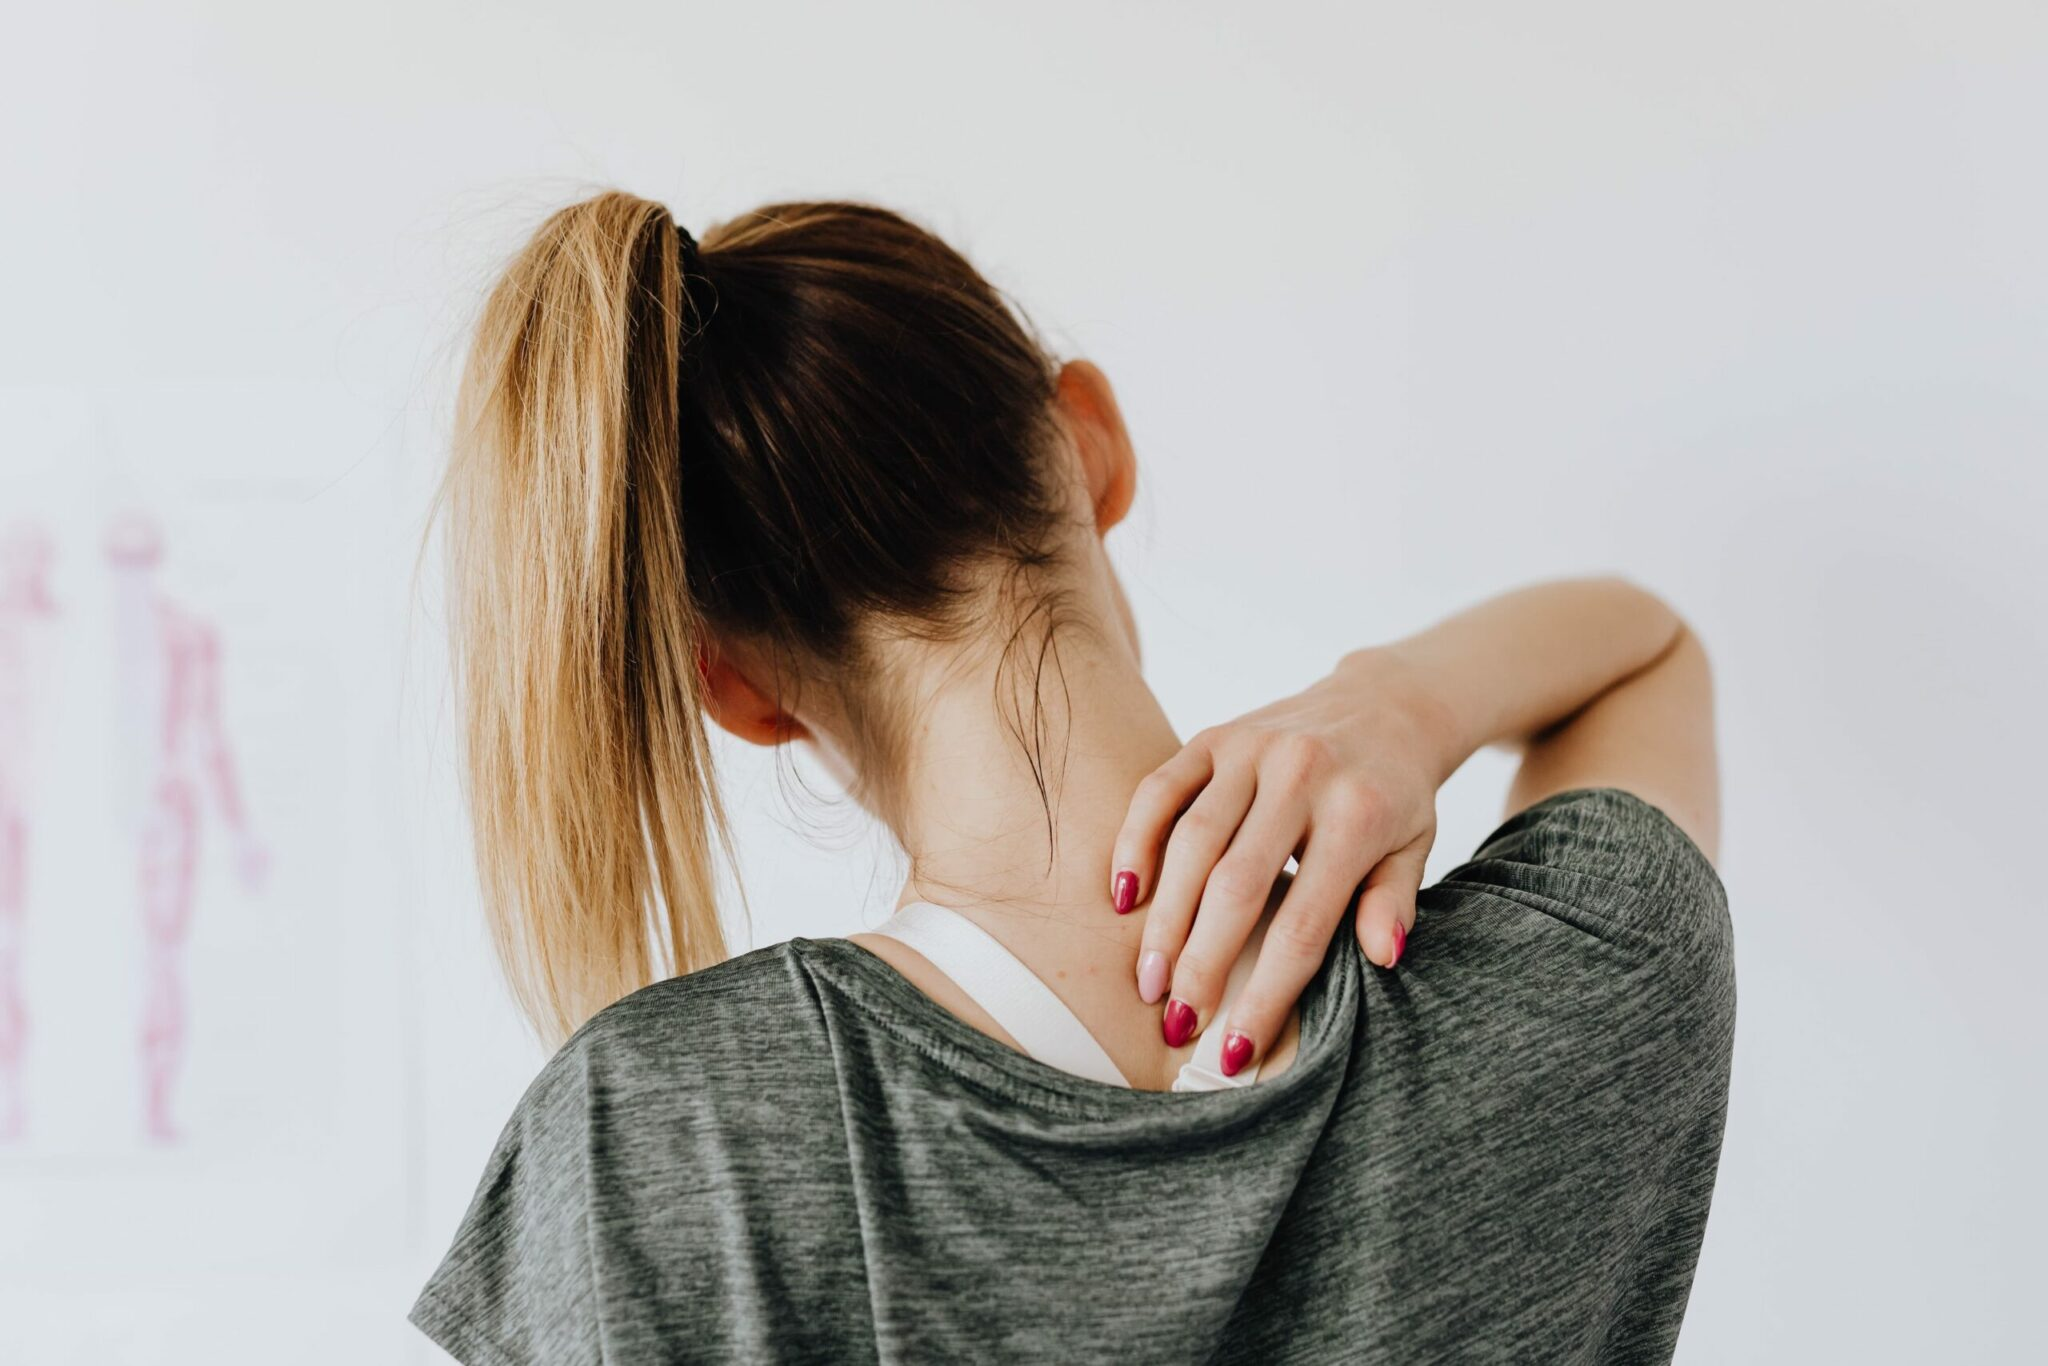 How to stop back pain Turning Into A Debilitating Problem